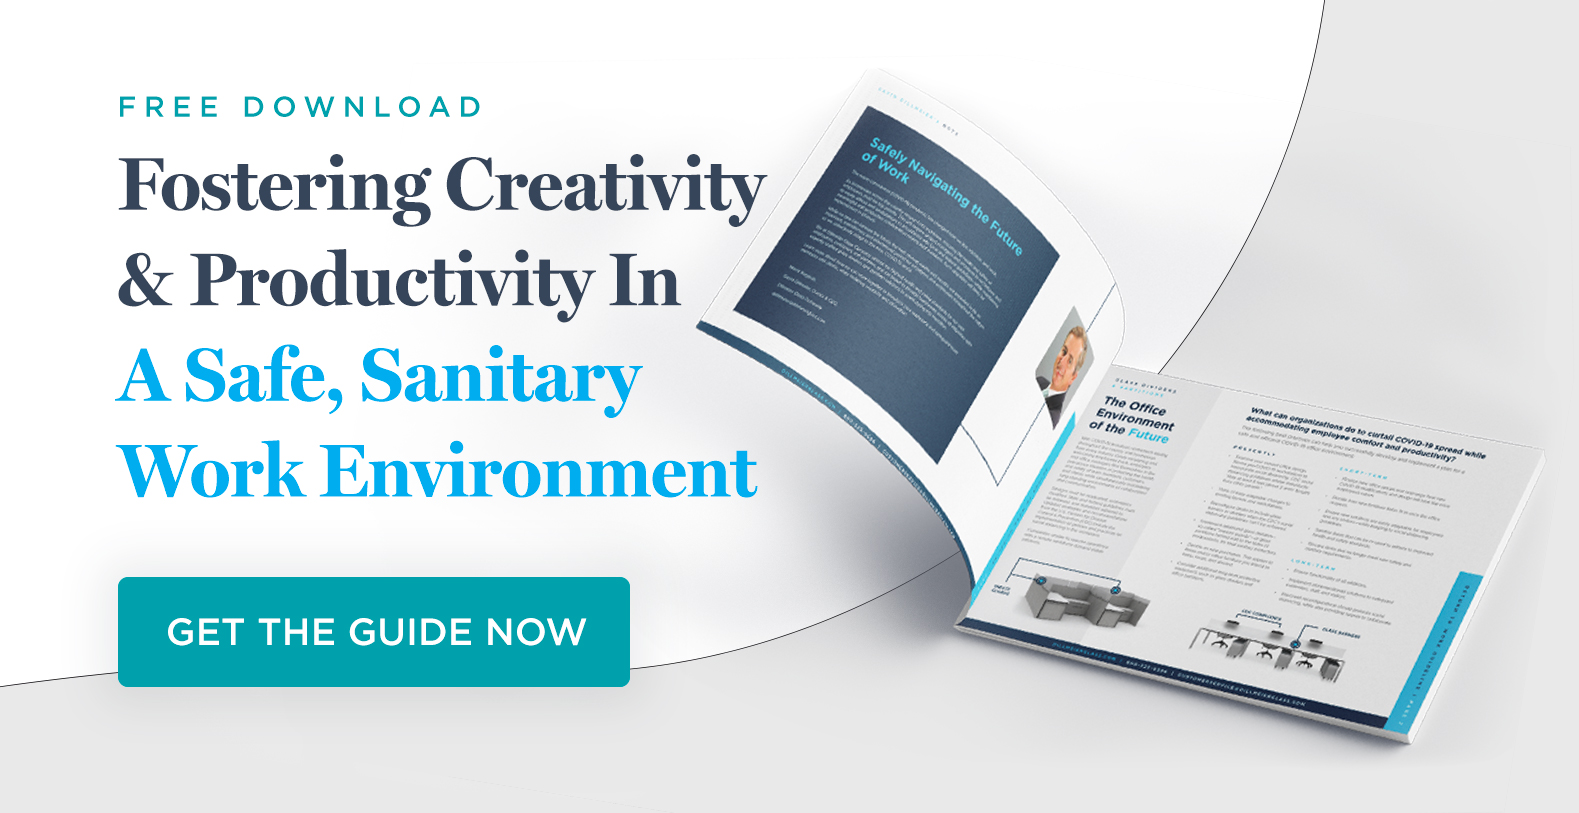 PDF Download Image for Fostering Creativity and productivity in a safe, sanitary work environment PDF